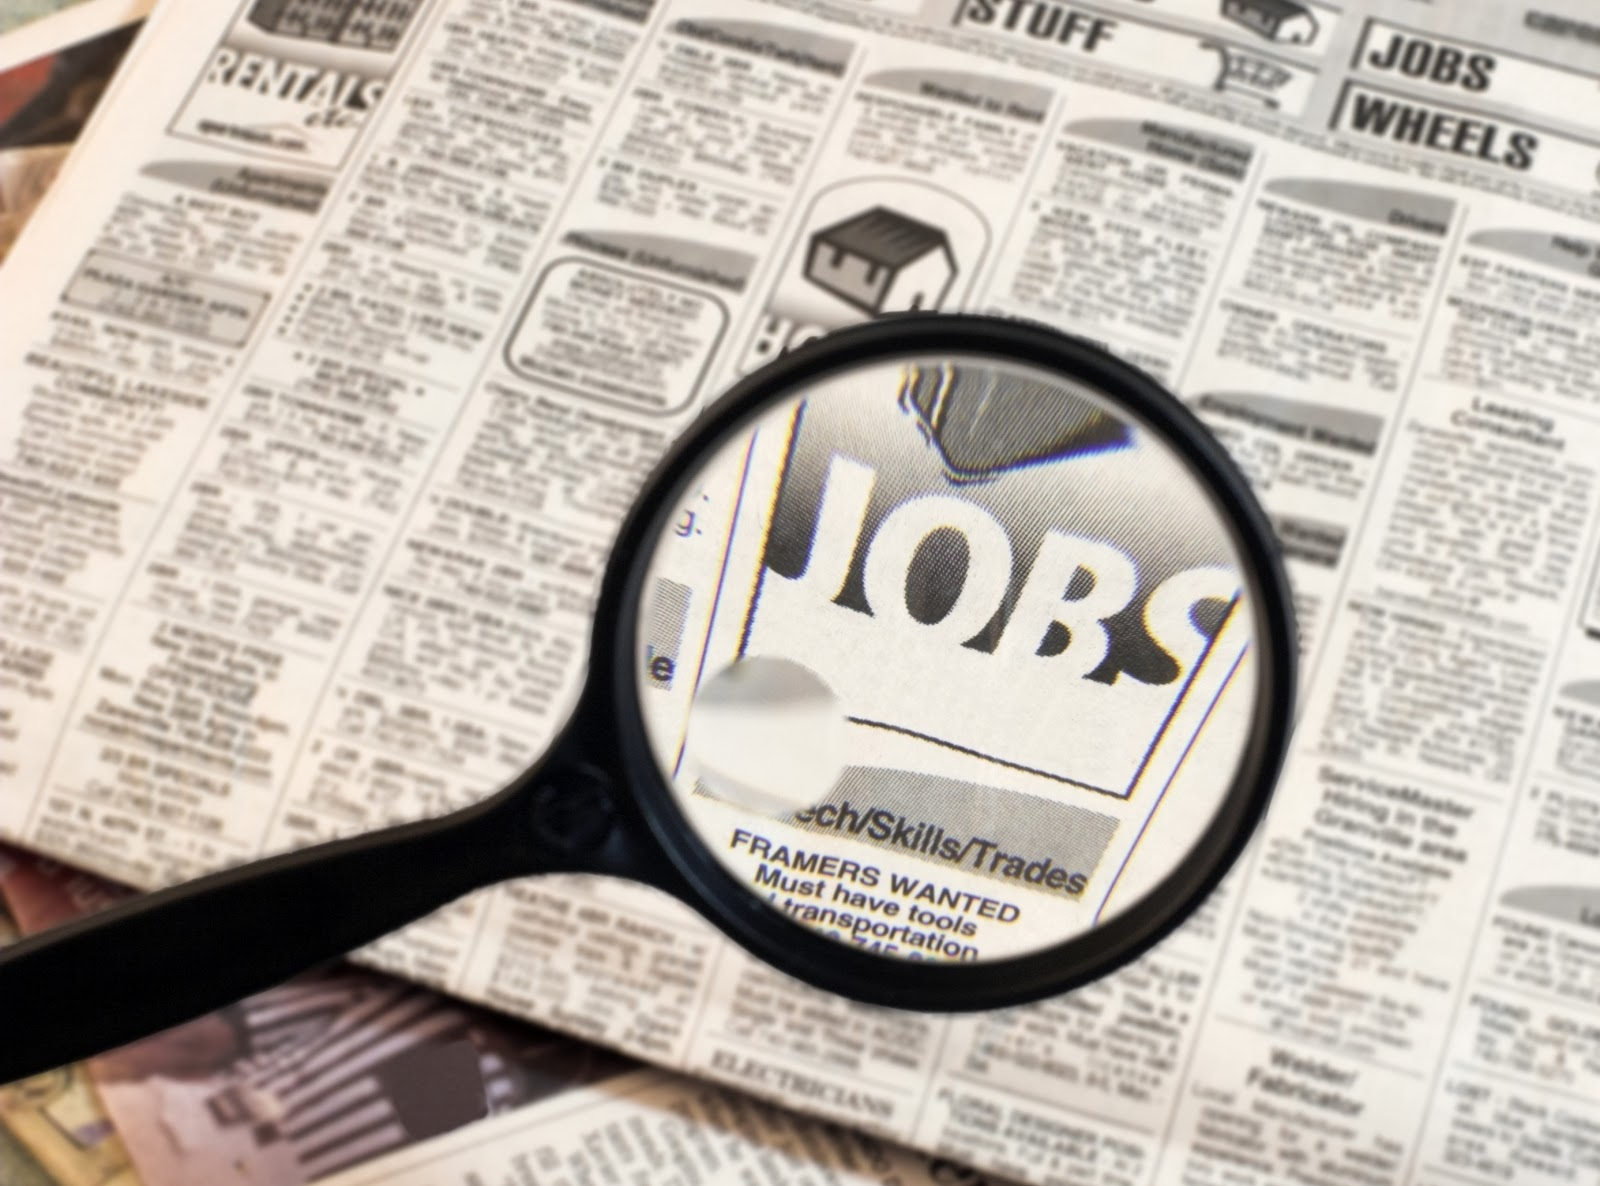 Magnifying glass over newspaper job listing